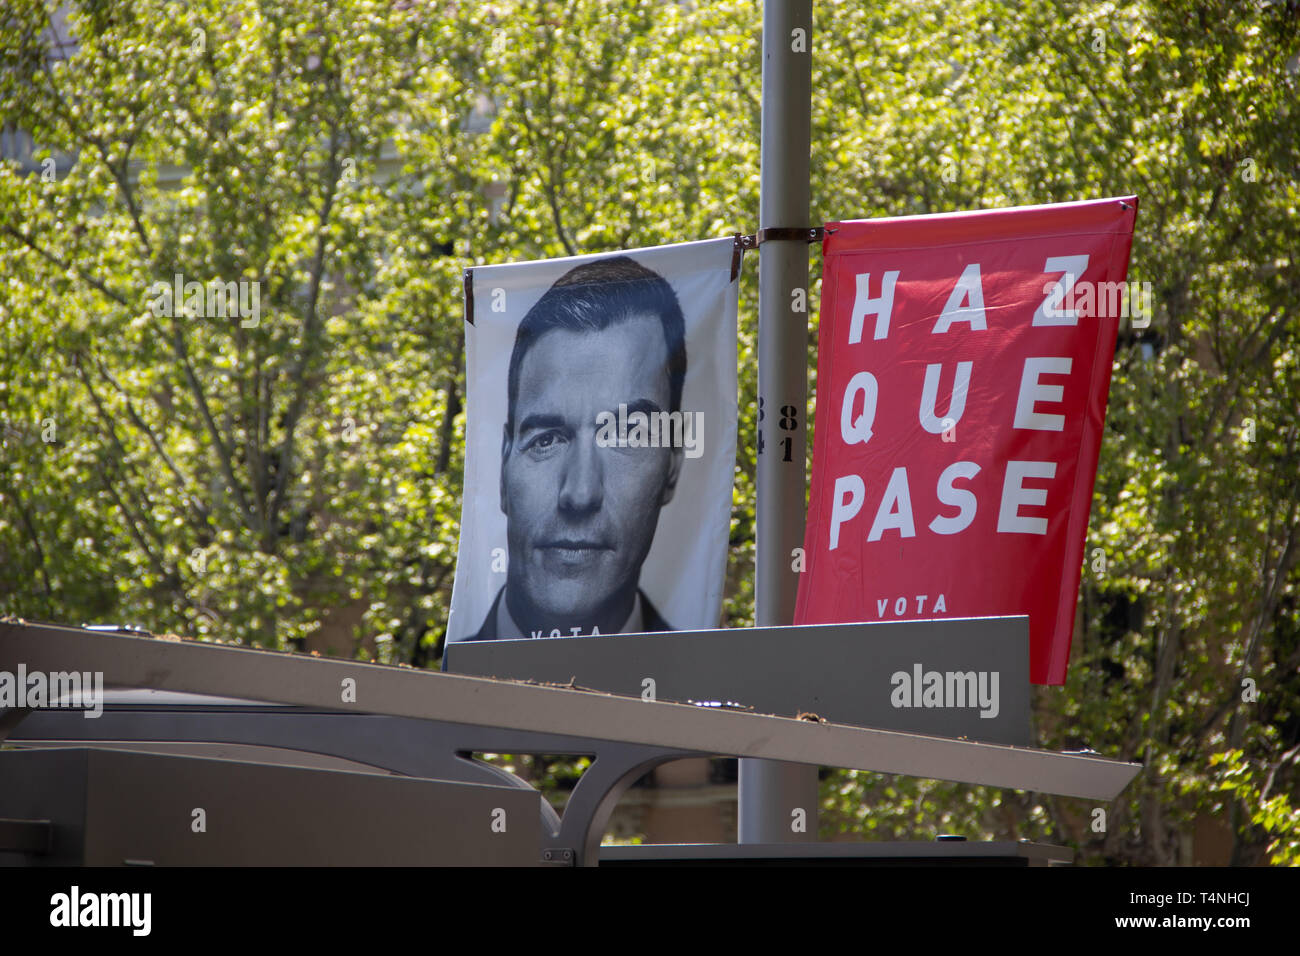 Madrid, Spain - 04 12 2019: Political campaign banners of the socialistic party PSOE, showing their lead candidate for president  Pedro Sanchez Stock Photo